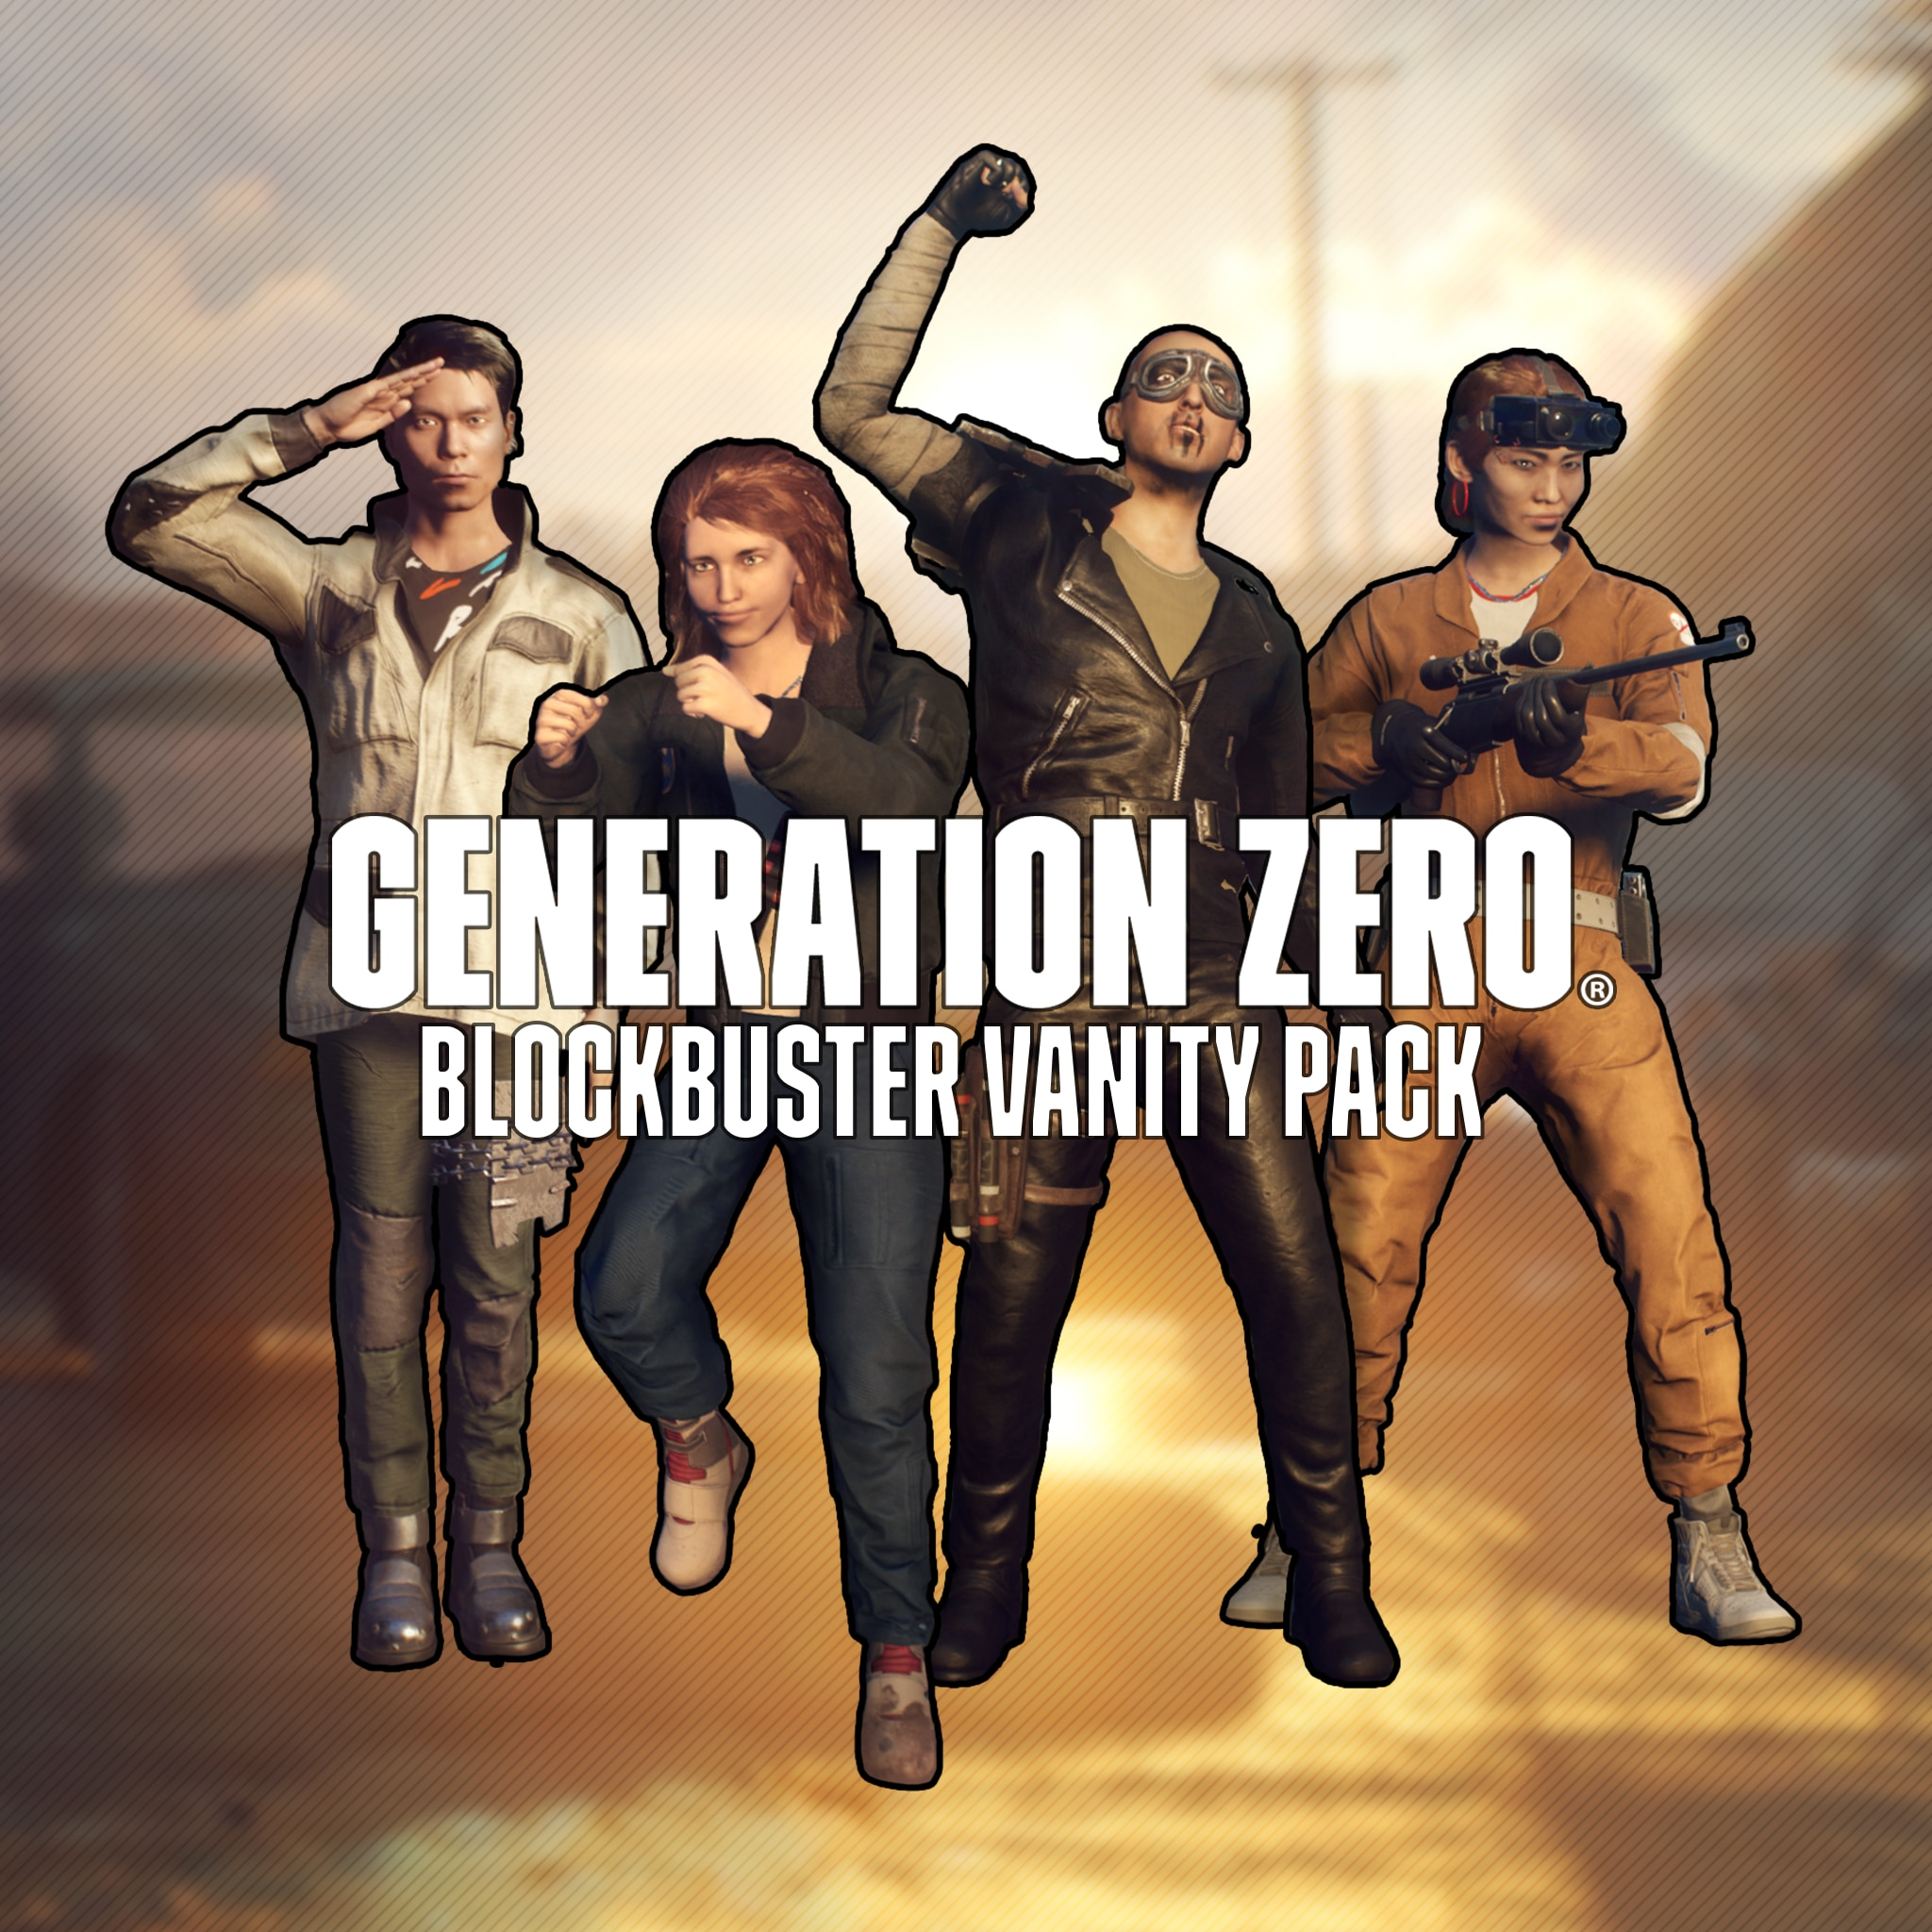 Generation Zero® - Blockbuster Vanity Pack